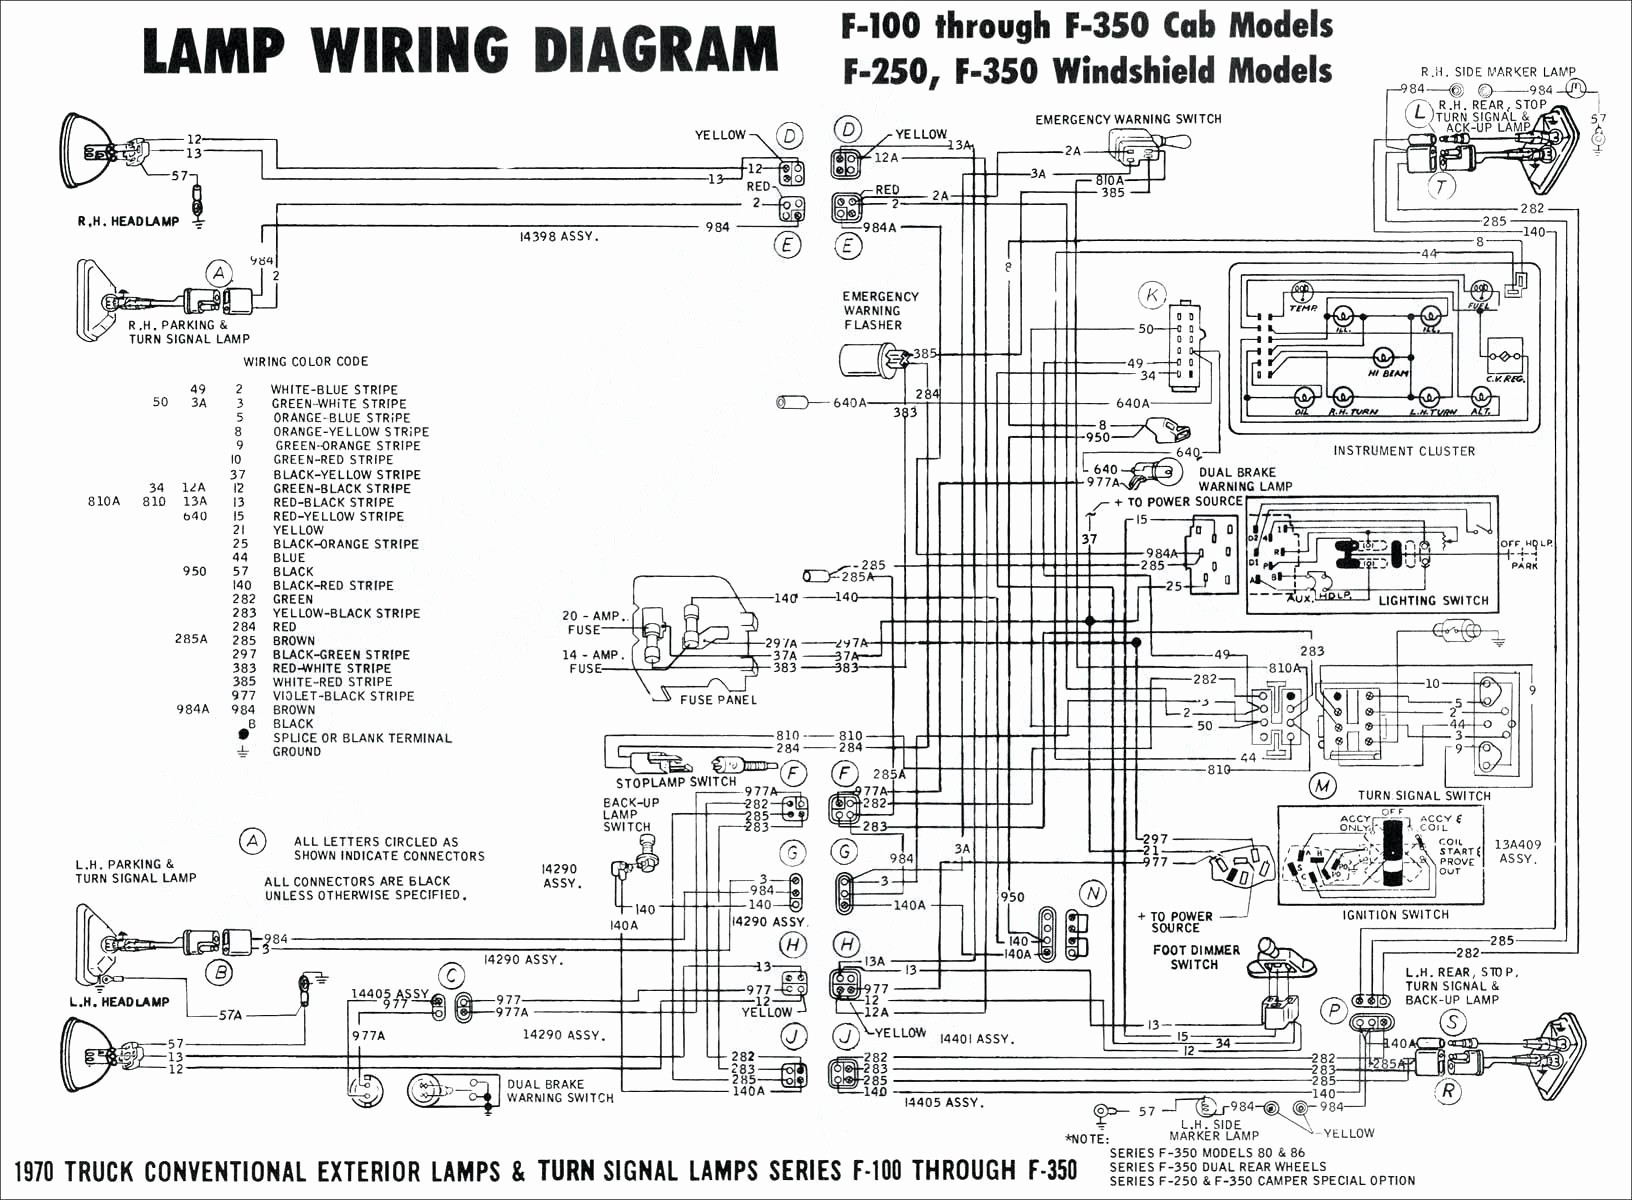 1993 Chevy Silverado Wiring Diagram Vs Toyota Best 2018 Iq Fuse Box 92 Tail Light Worksheet And Of